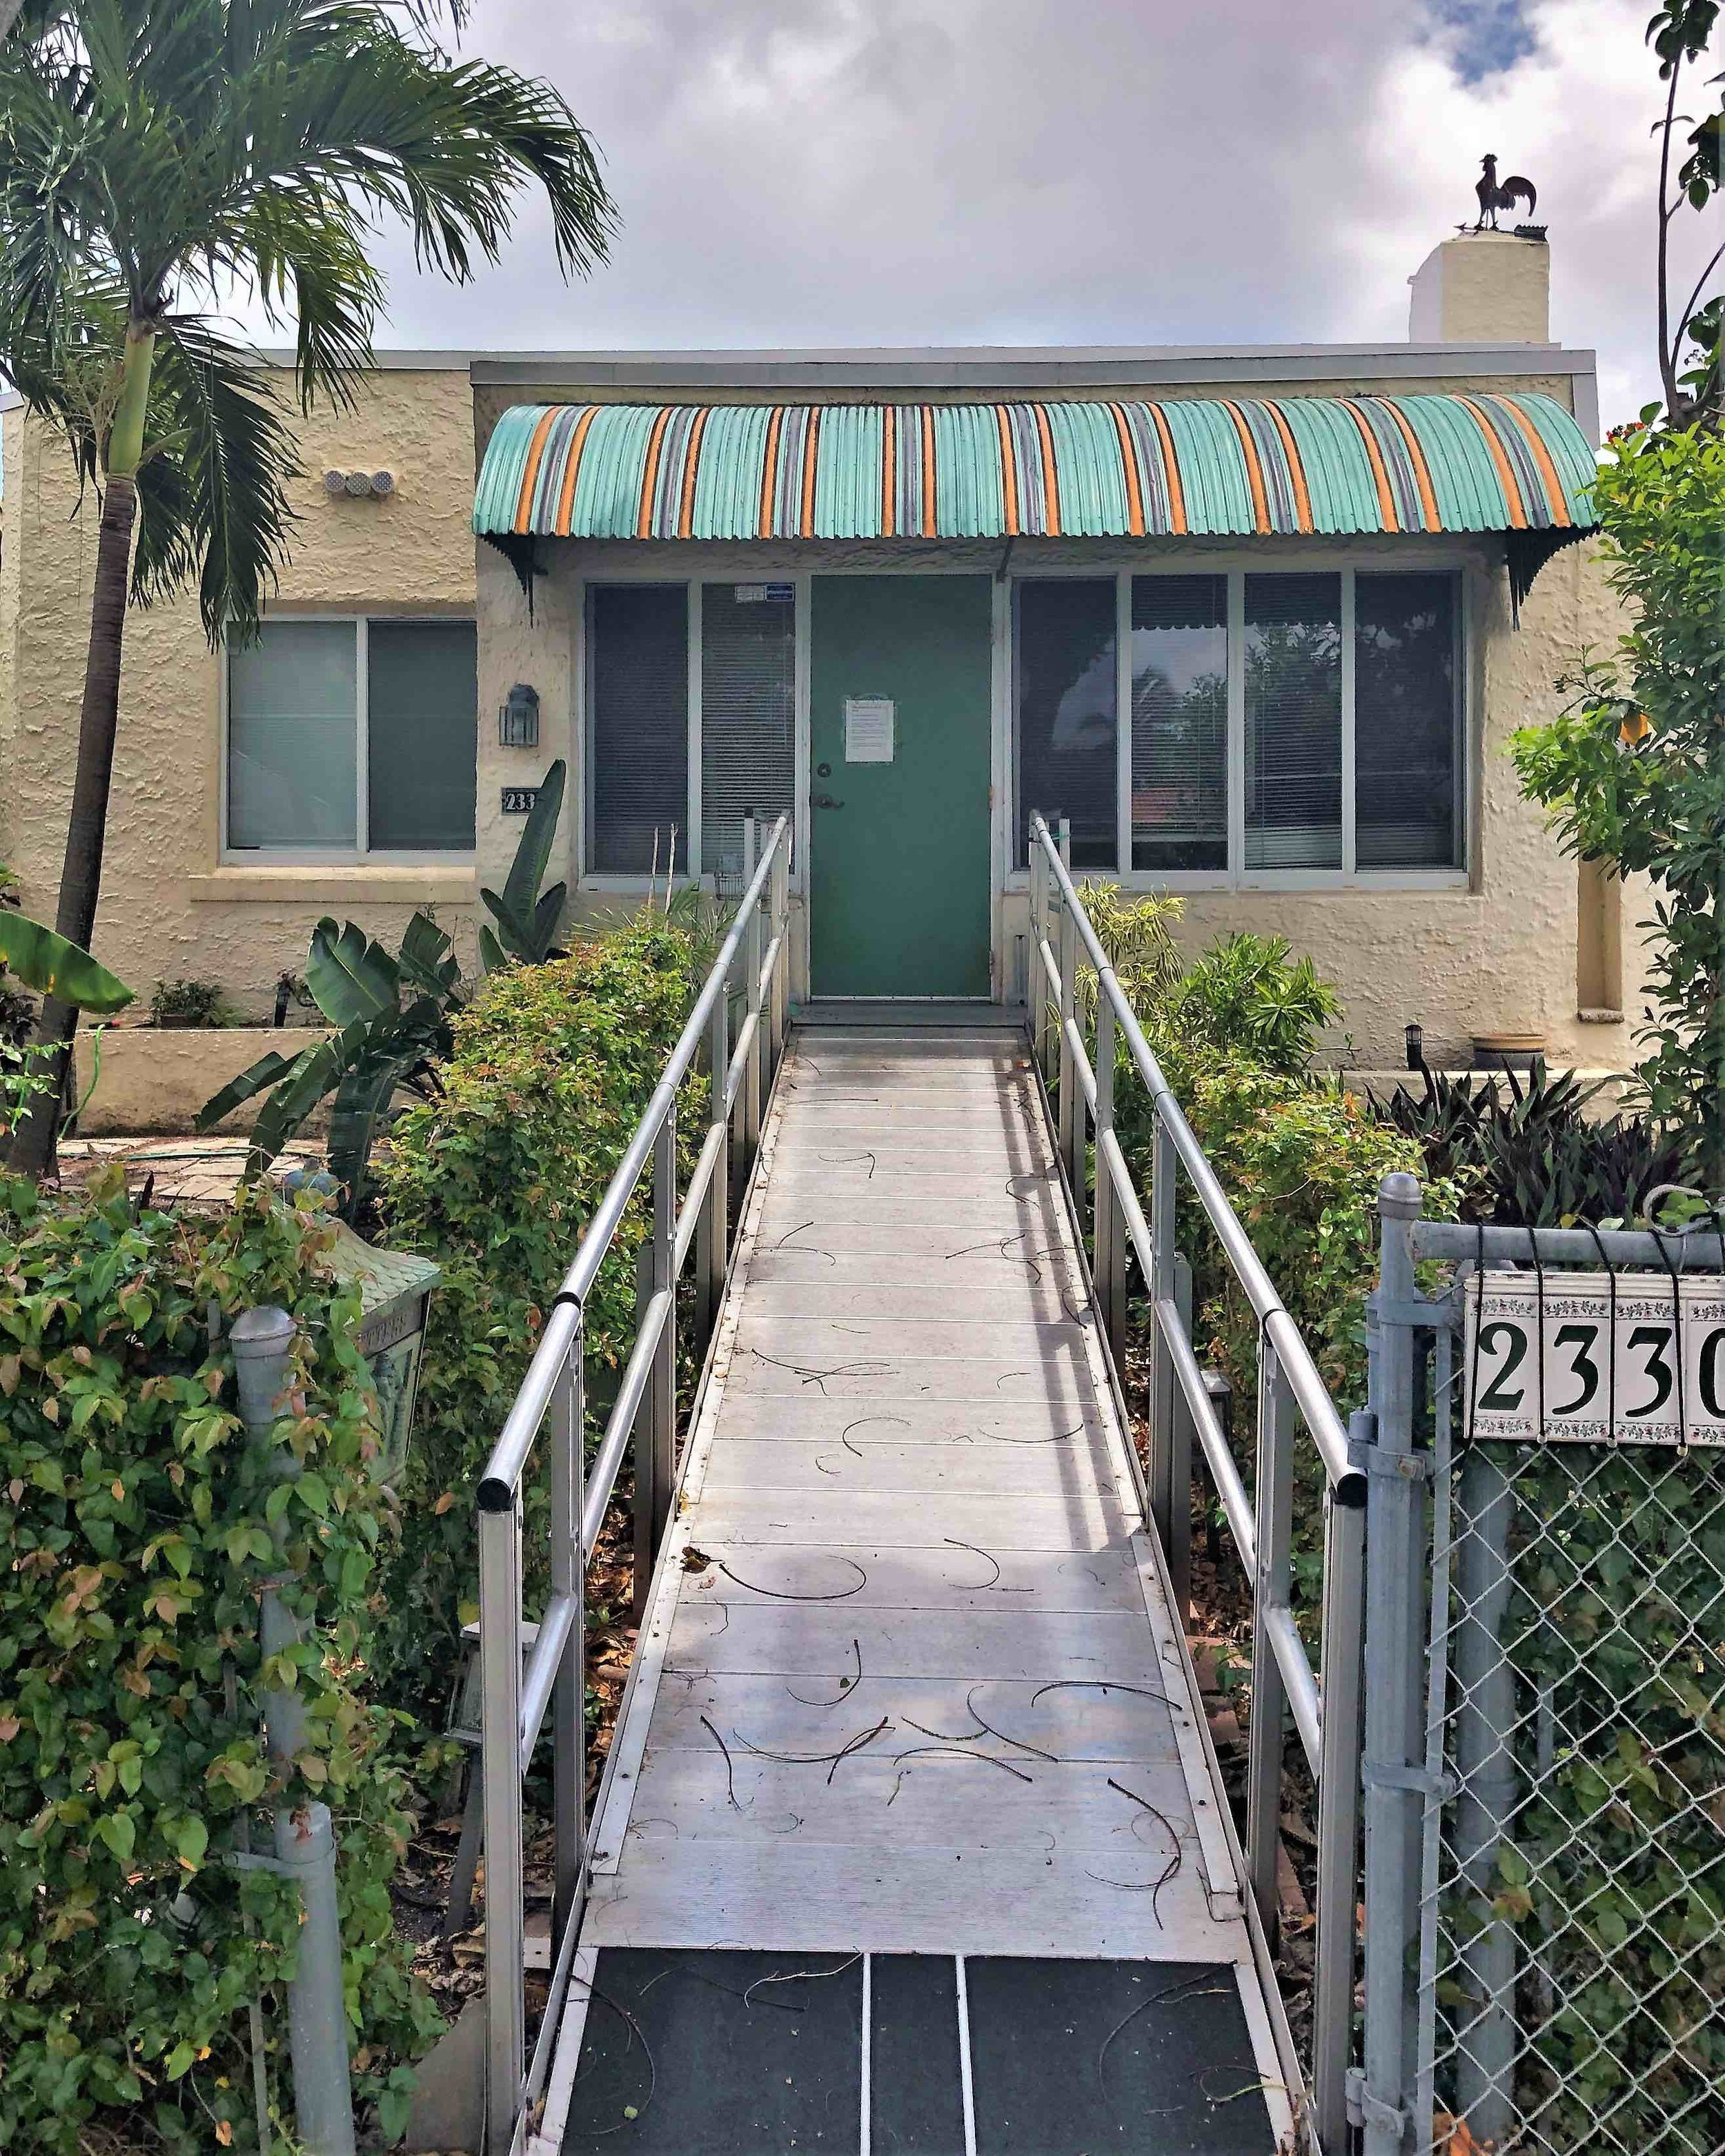 A ramp with non skid tape runs front door to sidewalk and serves a house elevated far above the flood plain in Miami, ground zero for sea-level rise.